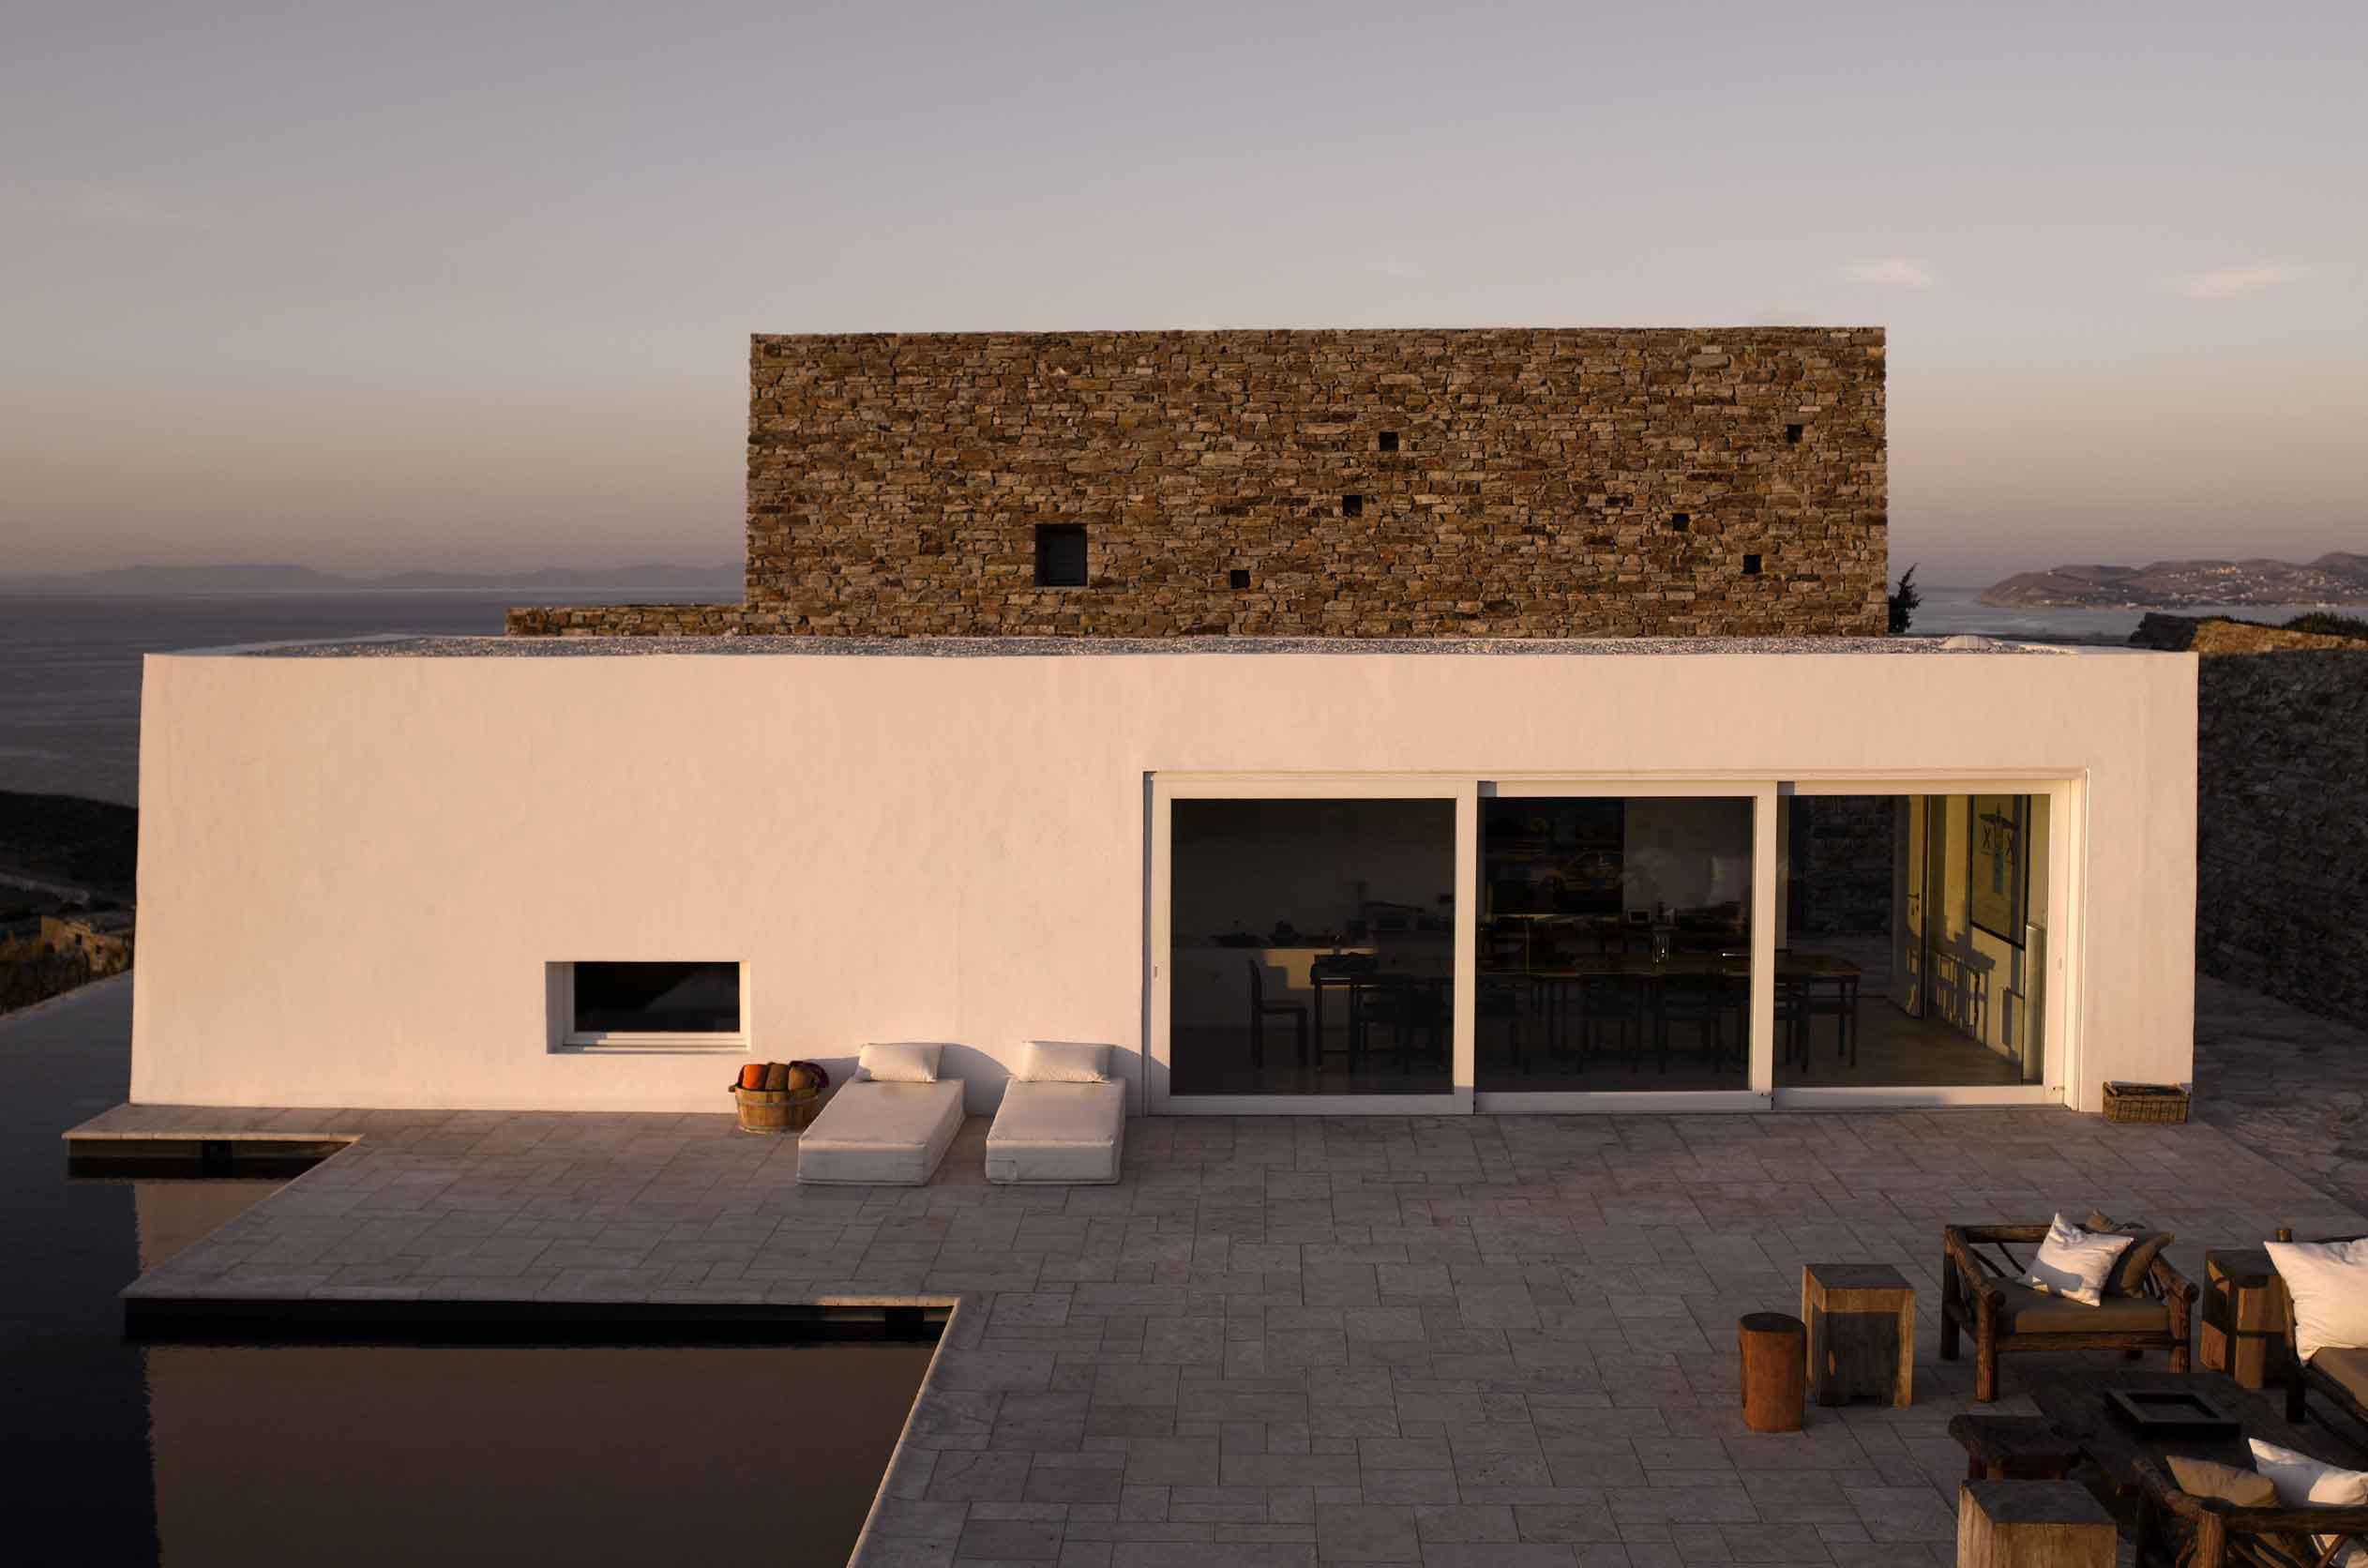 The 2004 winner of the ar+d Emerging Architecture award, Kratir is a contemporary architectural landmark on the Greek island of Antiparos.